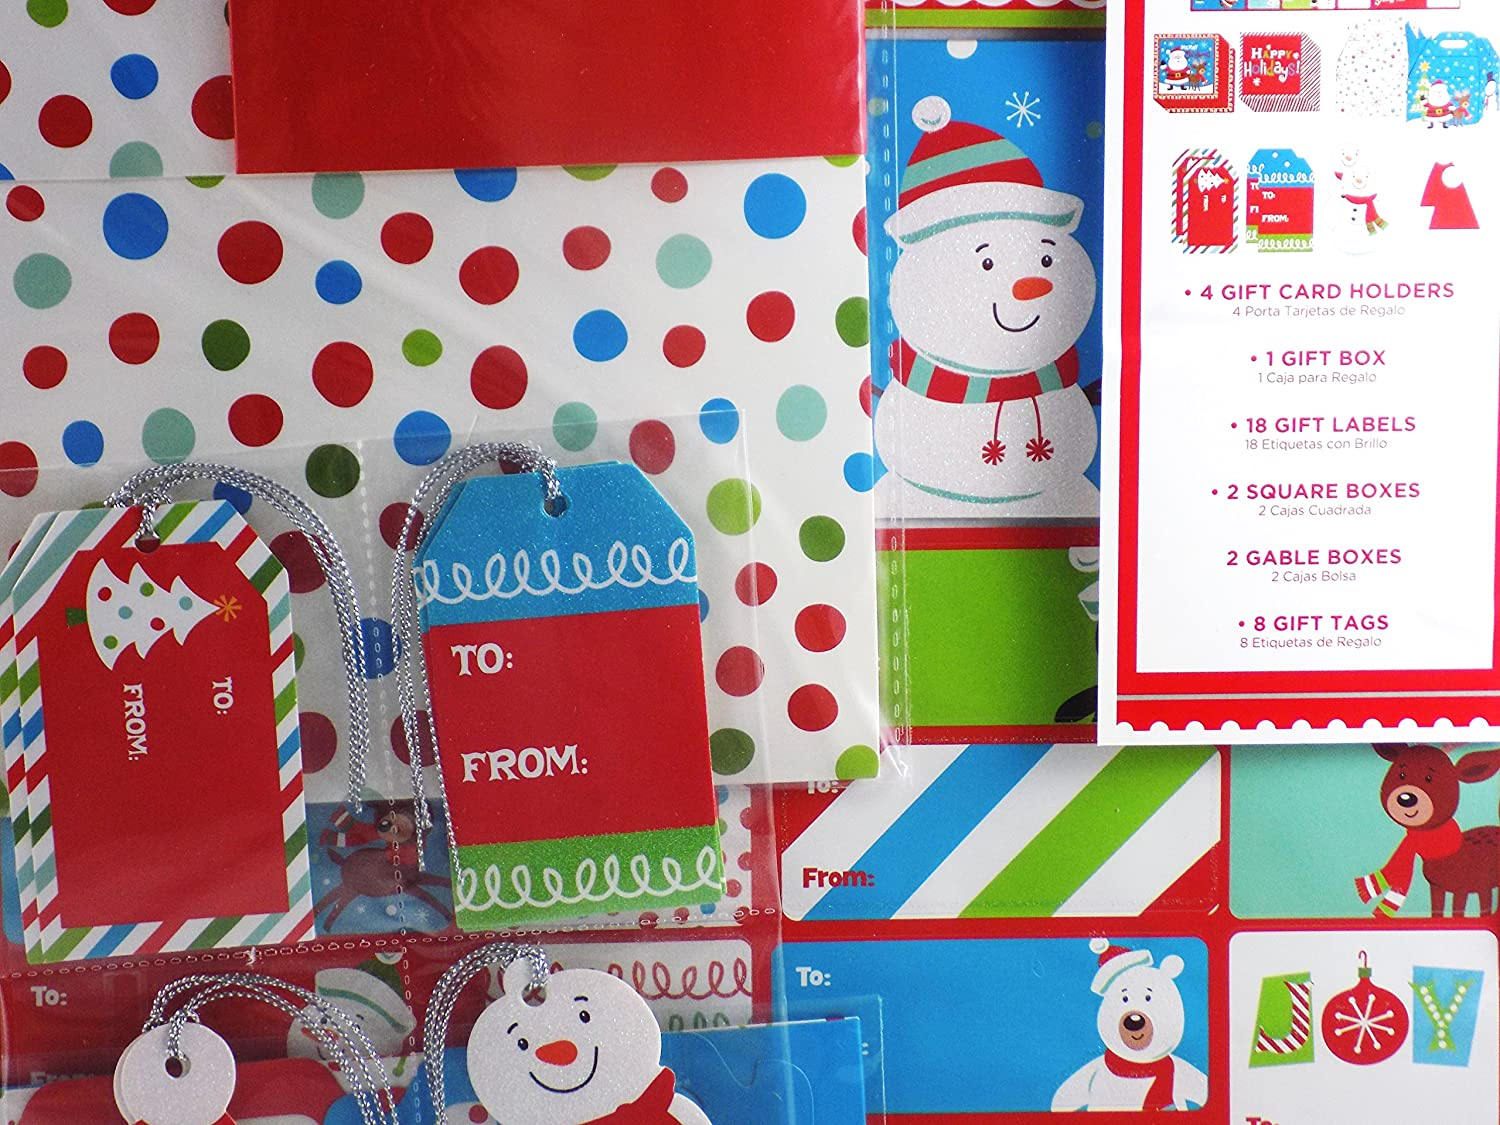 Amazon.com: 35 Piece Snowman Glittered Christmas Gift Package Kit with Boxes Gift Tags and Labels: Health & Personal Care